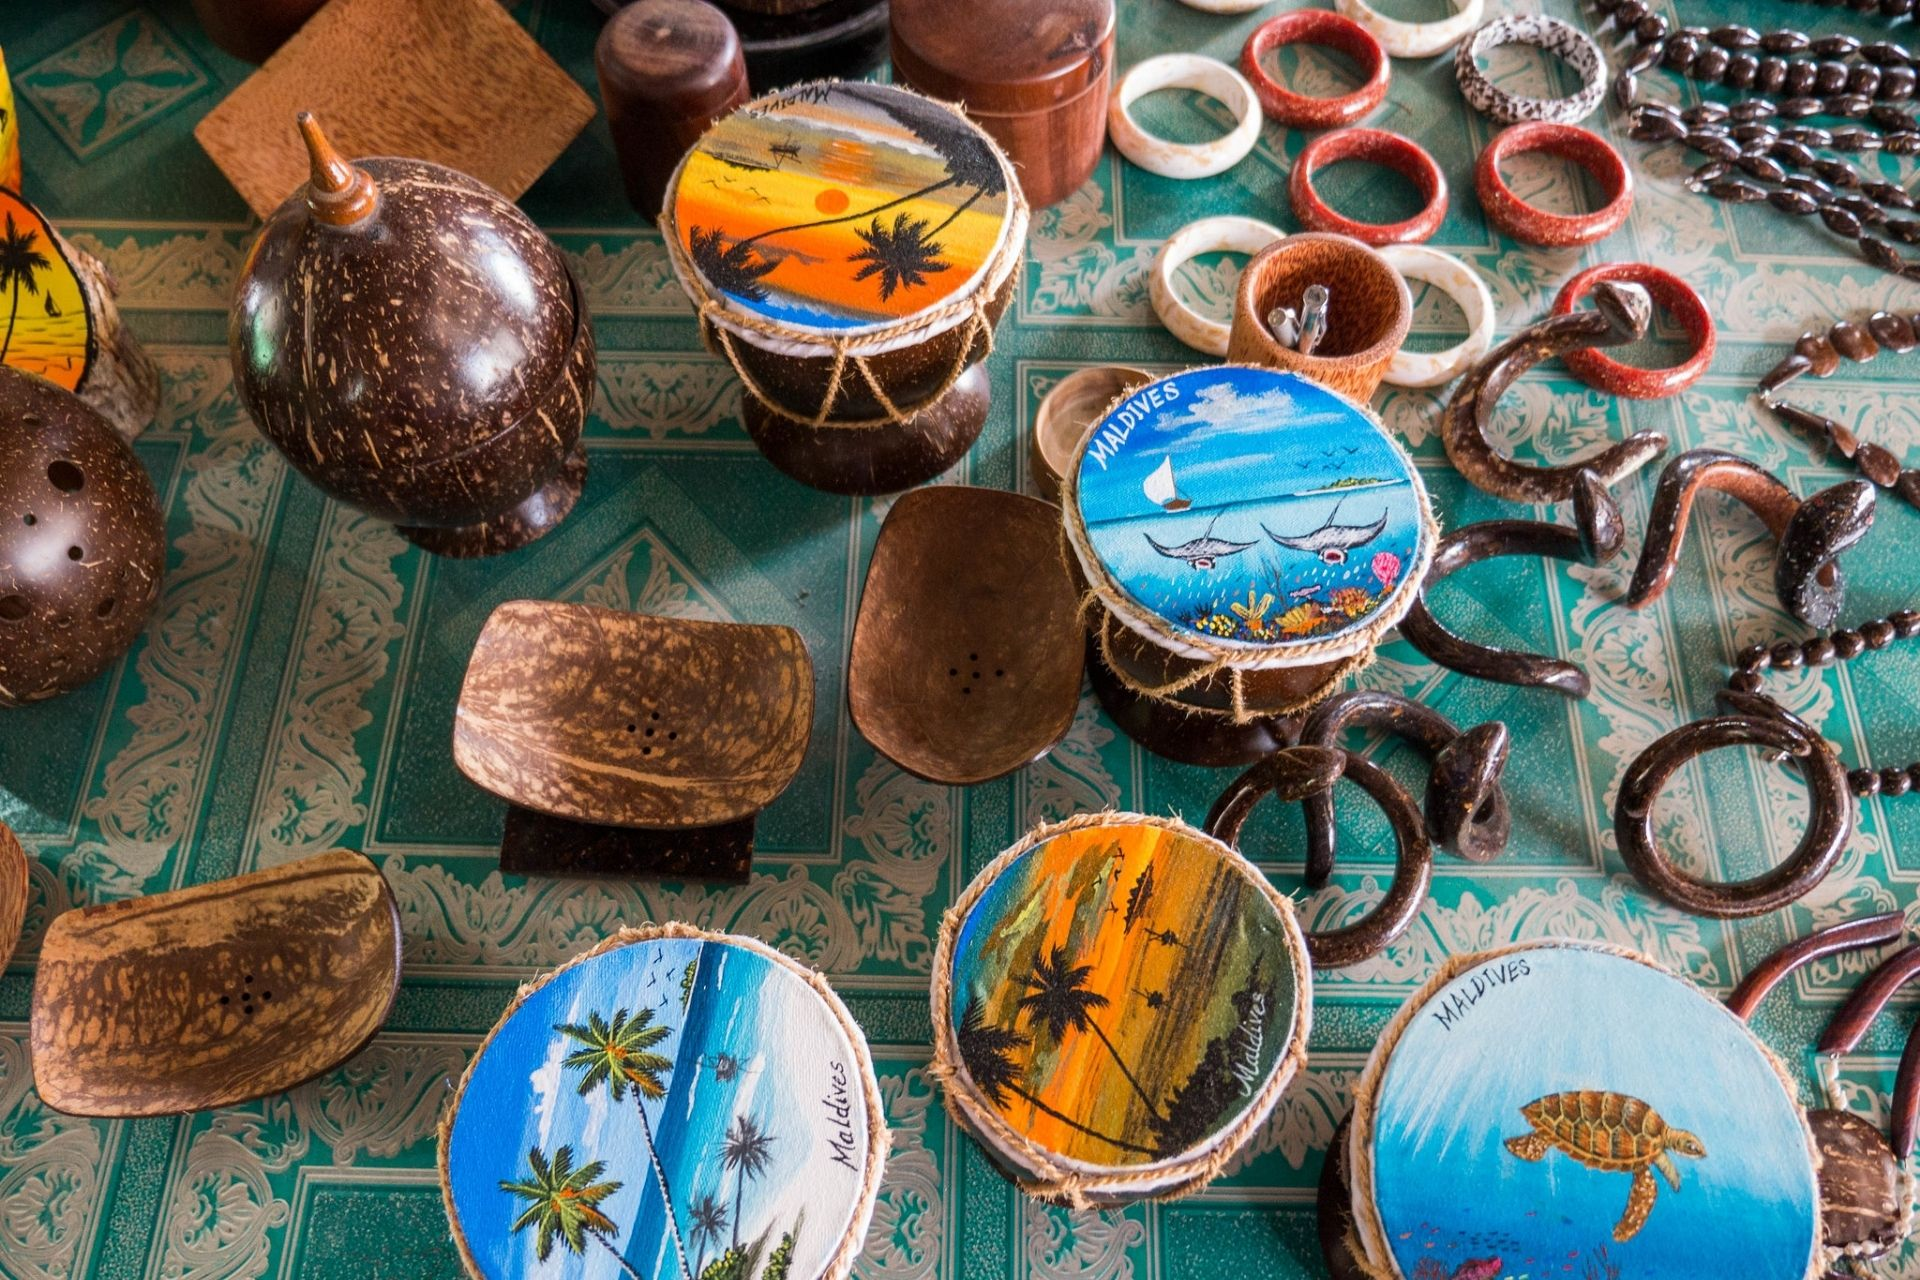 Shop local souvenir and handicrafts on your Full Day Maldives Adventure Trip